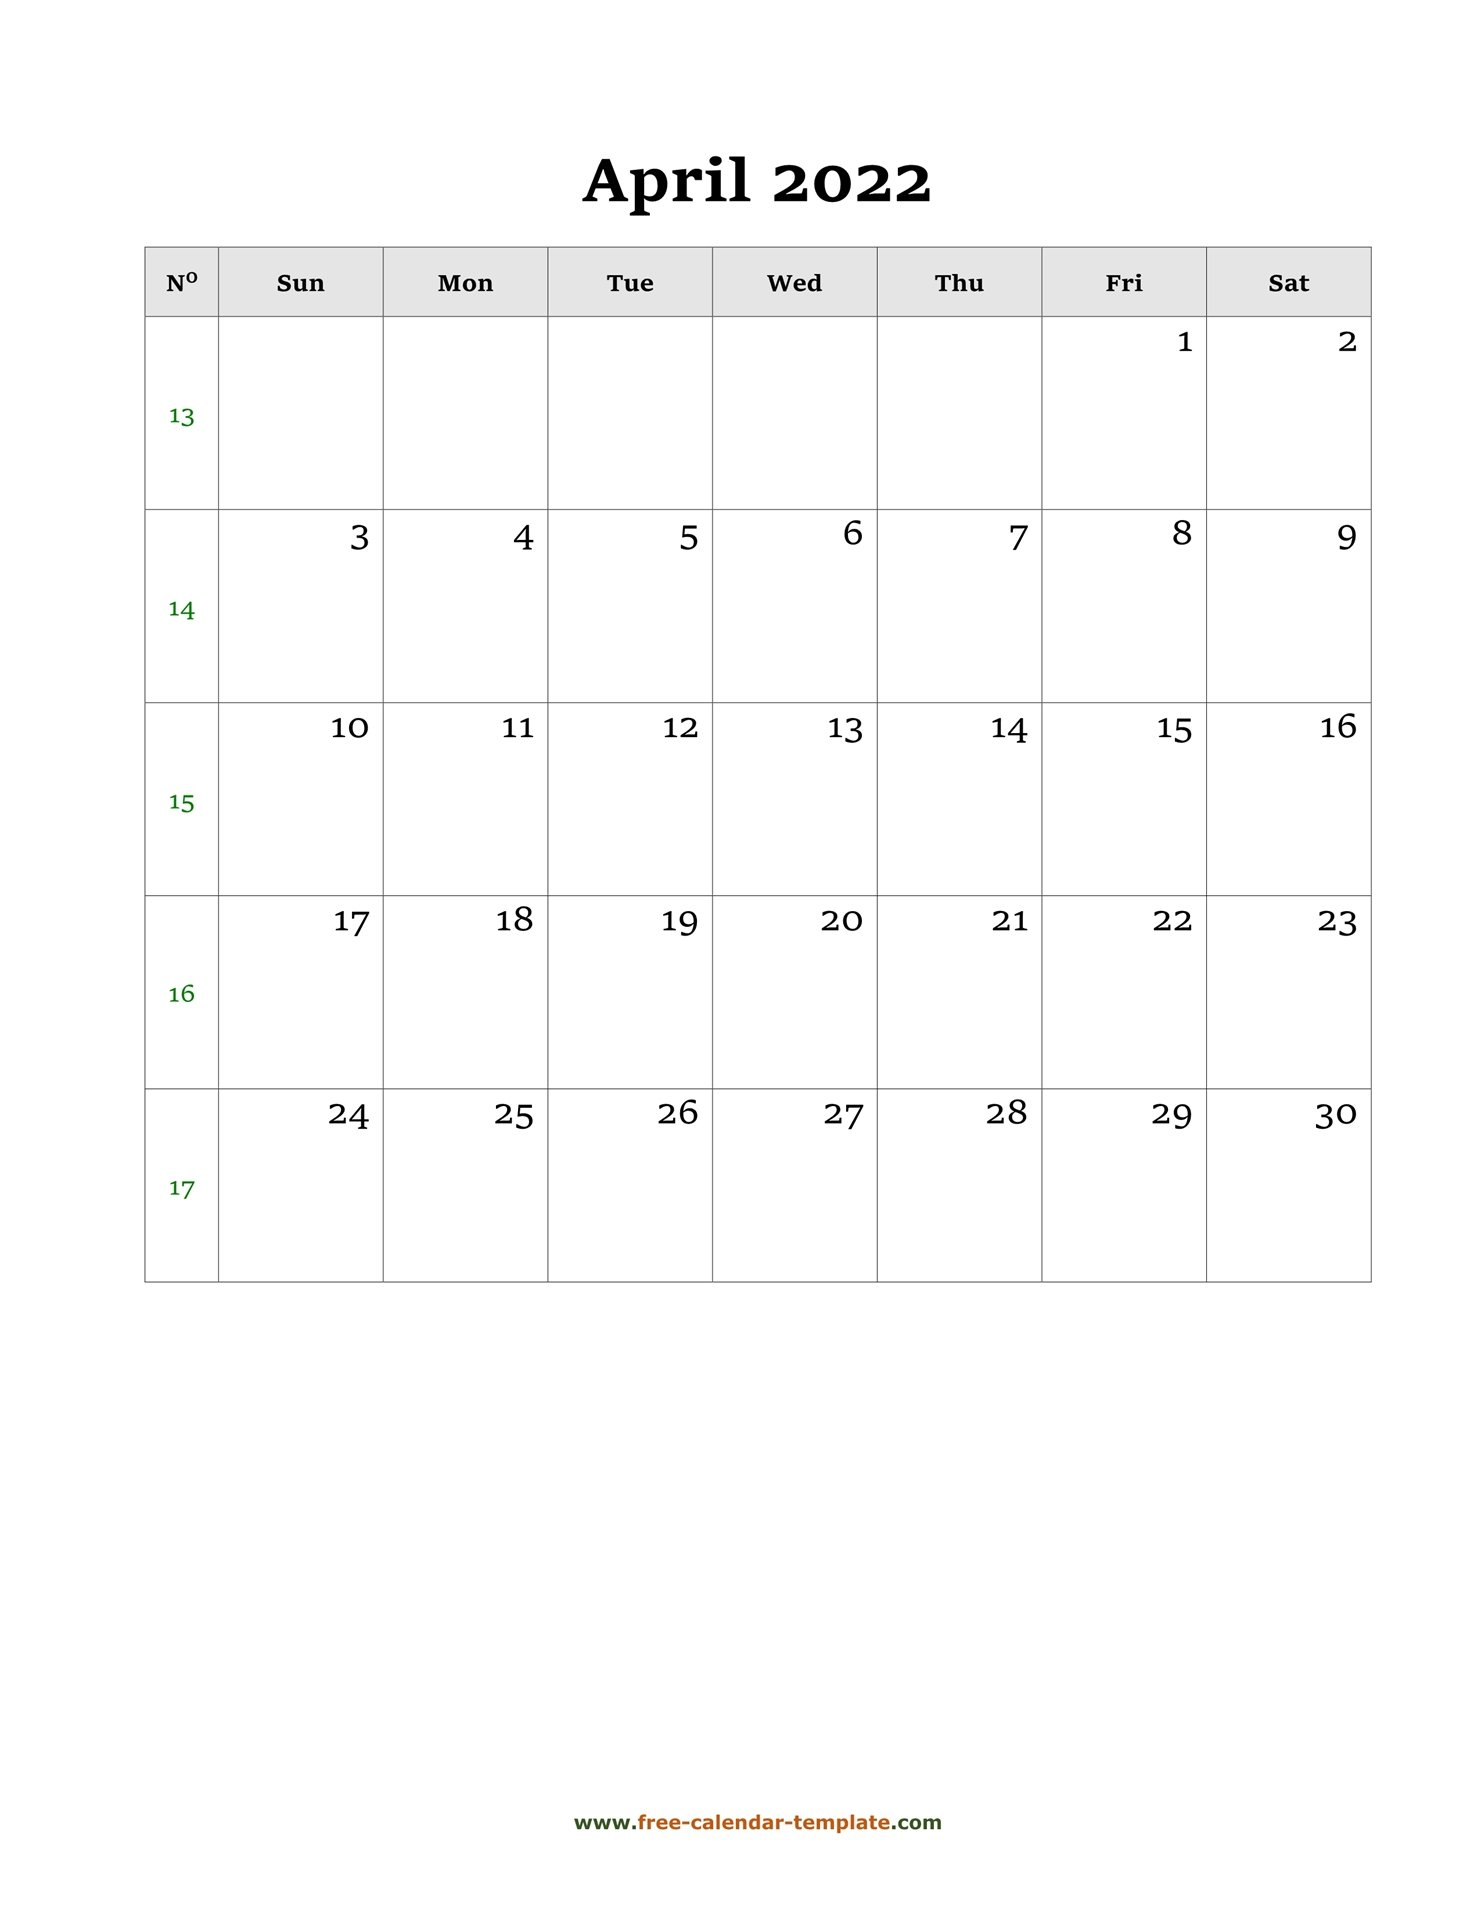 April Calendar 2022 Simple Design With Large Box On Each within April May Calendar 2022 Pdf Photo